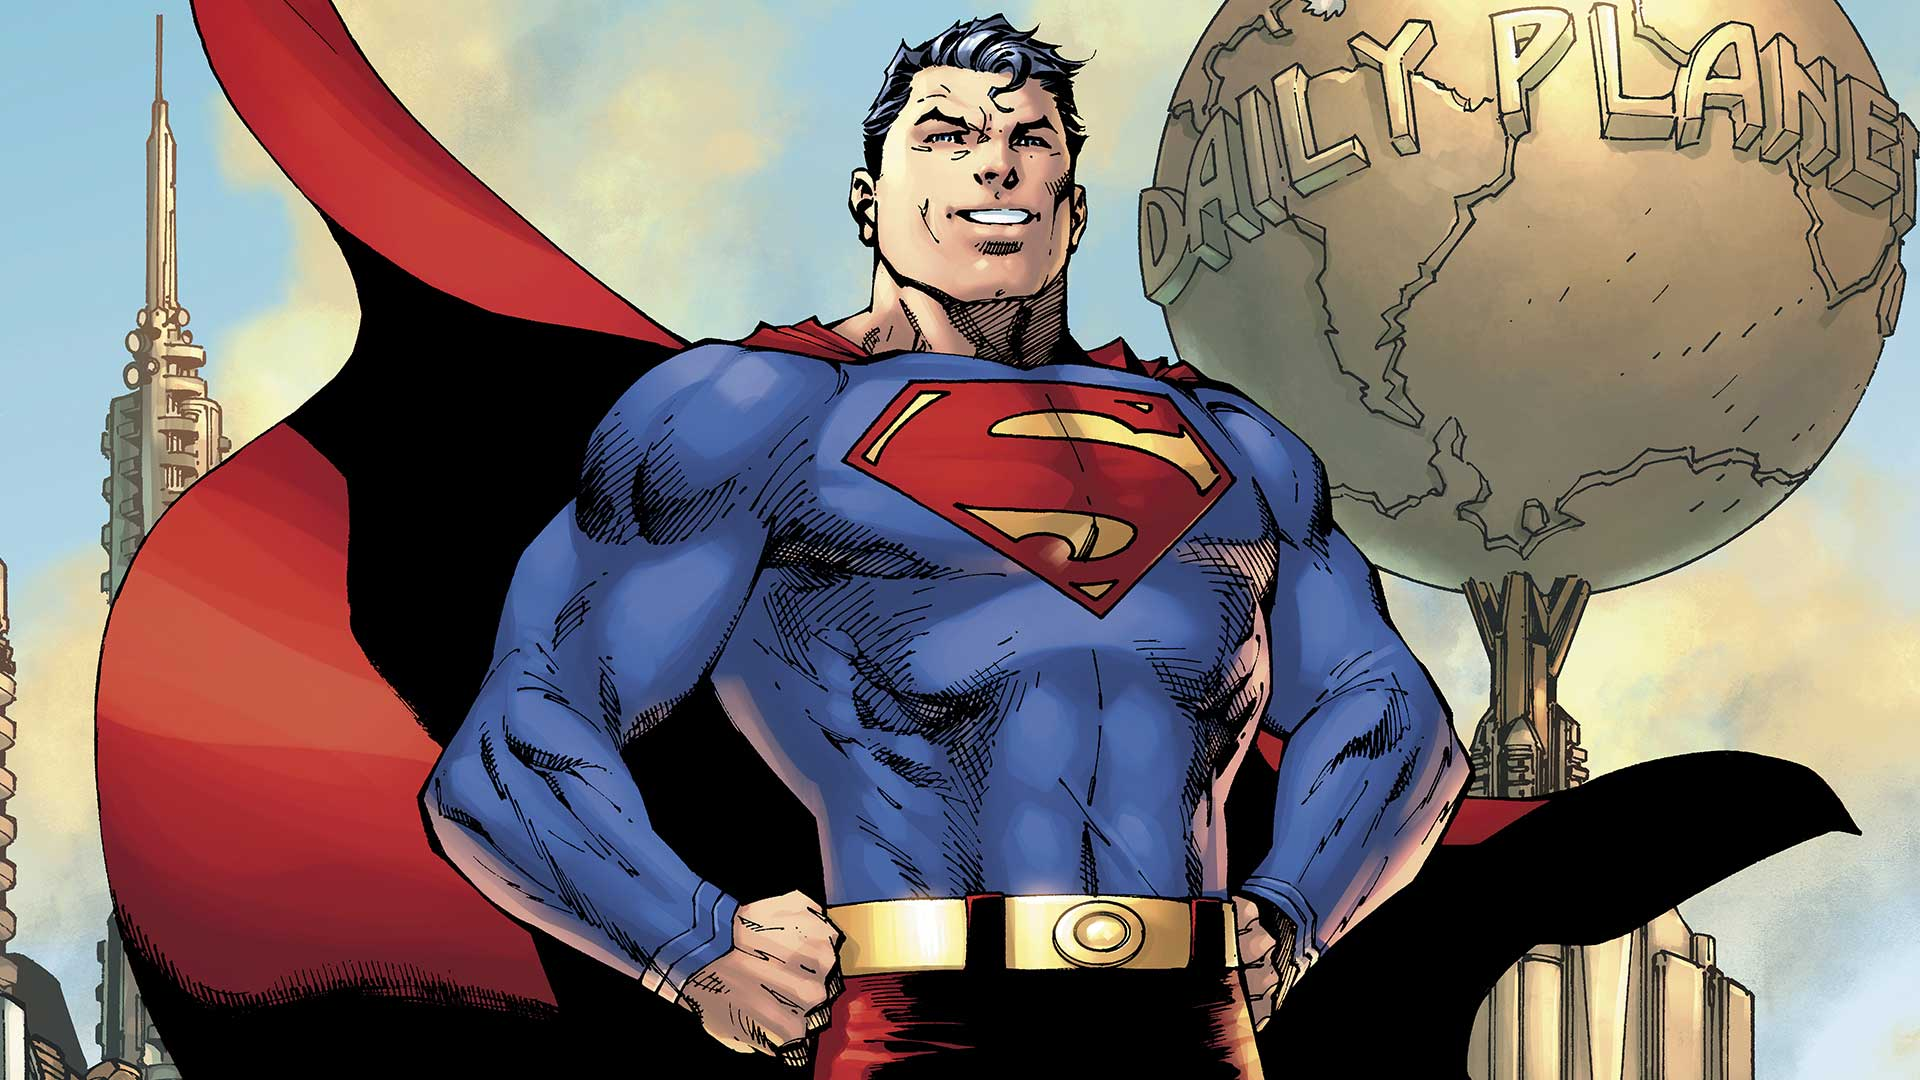 80 Years of Superman And Action Comics #1000 at WonderCon